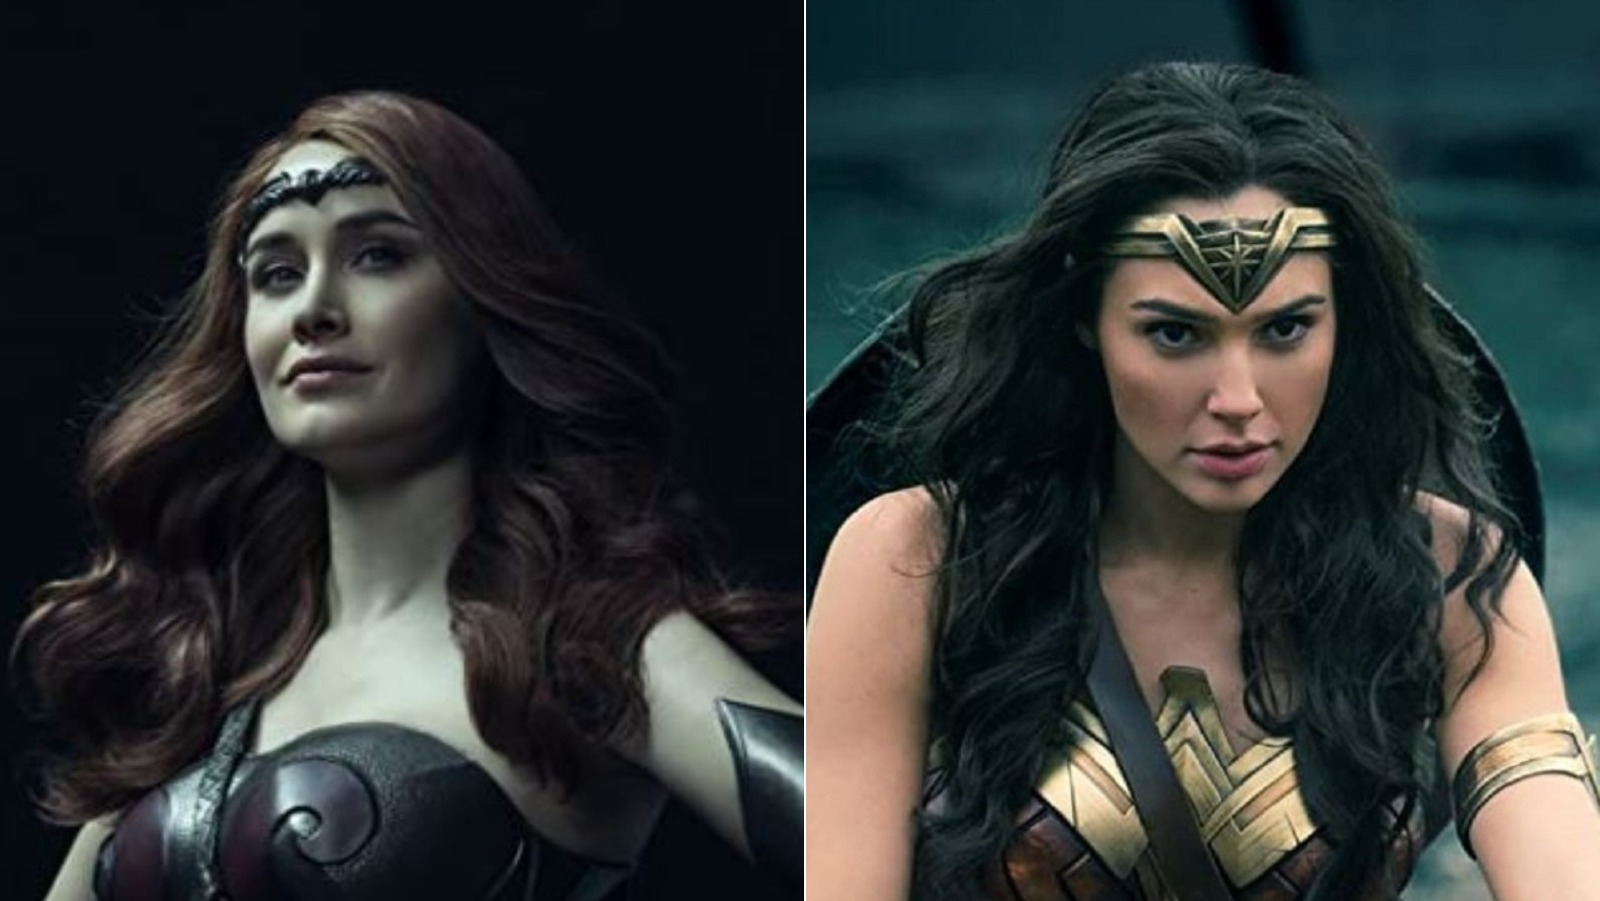 Could Queen Maeve beat Wonder Woman in a fight?